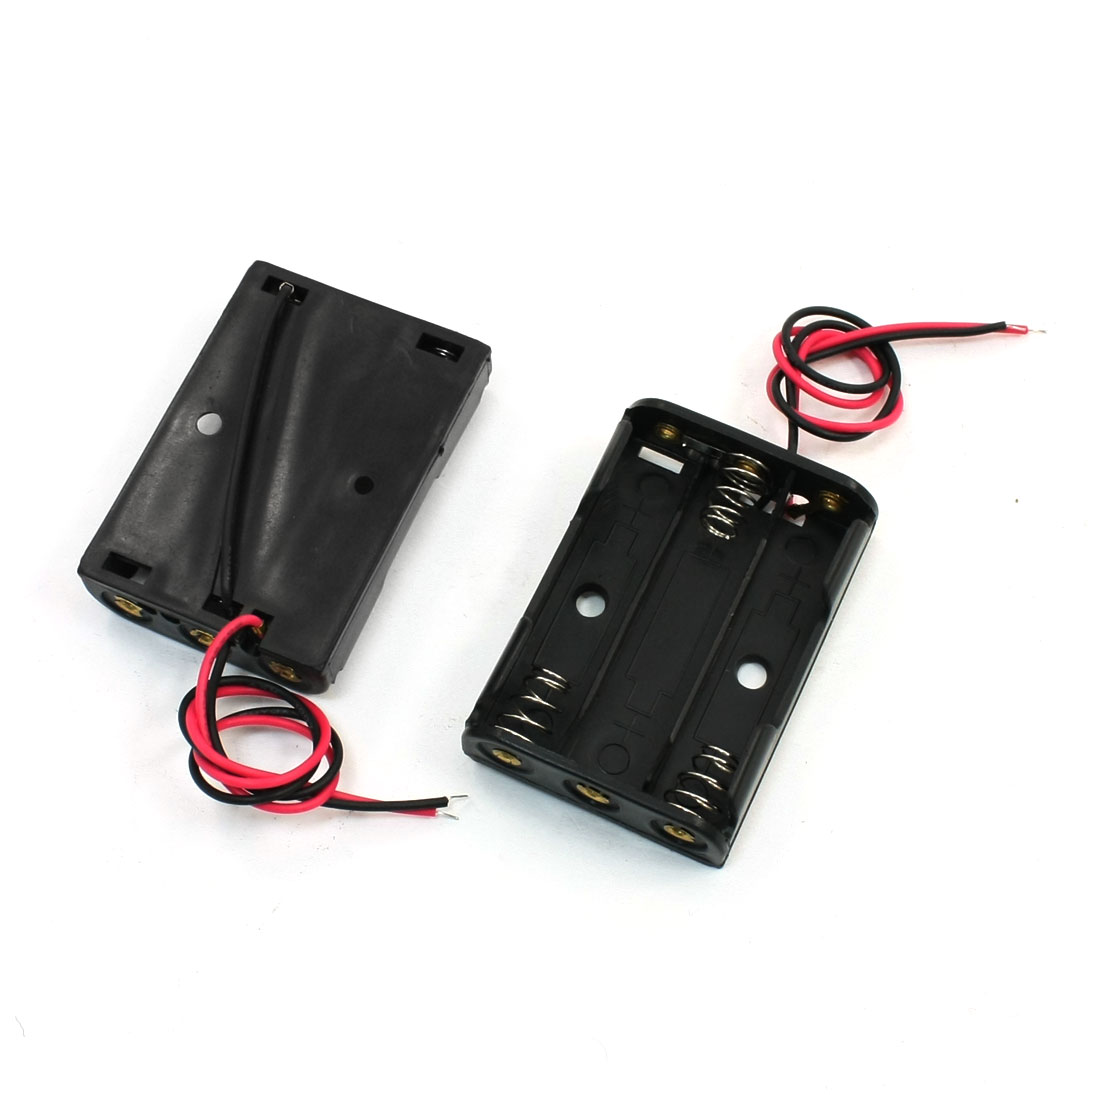 2Pcs Spring Clip 3 x 1.5V AAA Battery Holder Case Box Wire